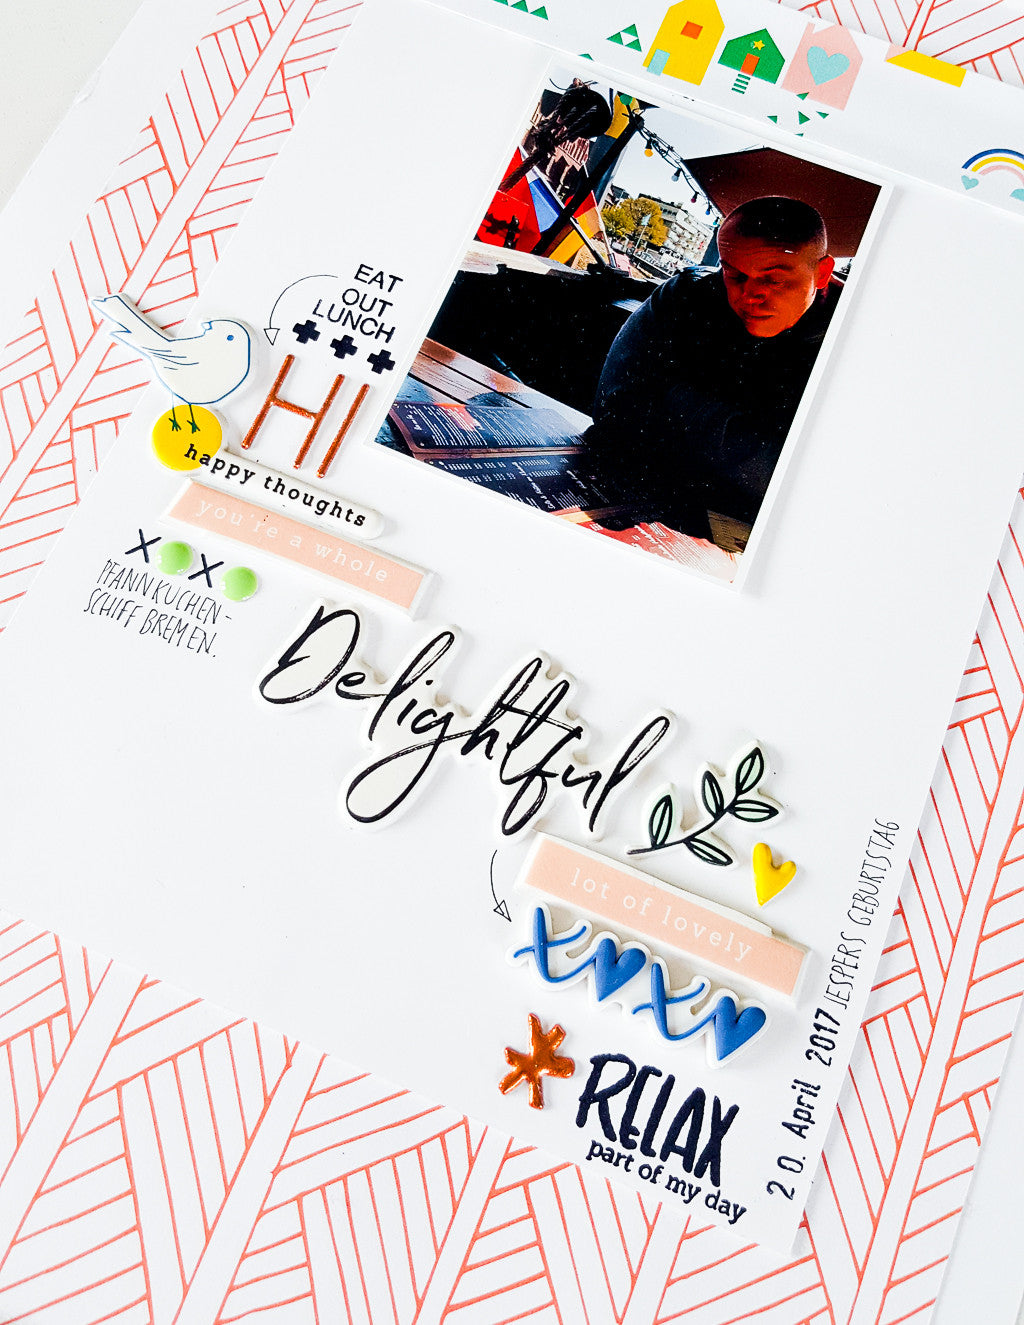 Scrapbooking layouts with Pinkfresh Studio's papers, embellishments and stamps